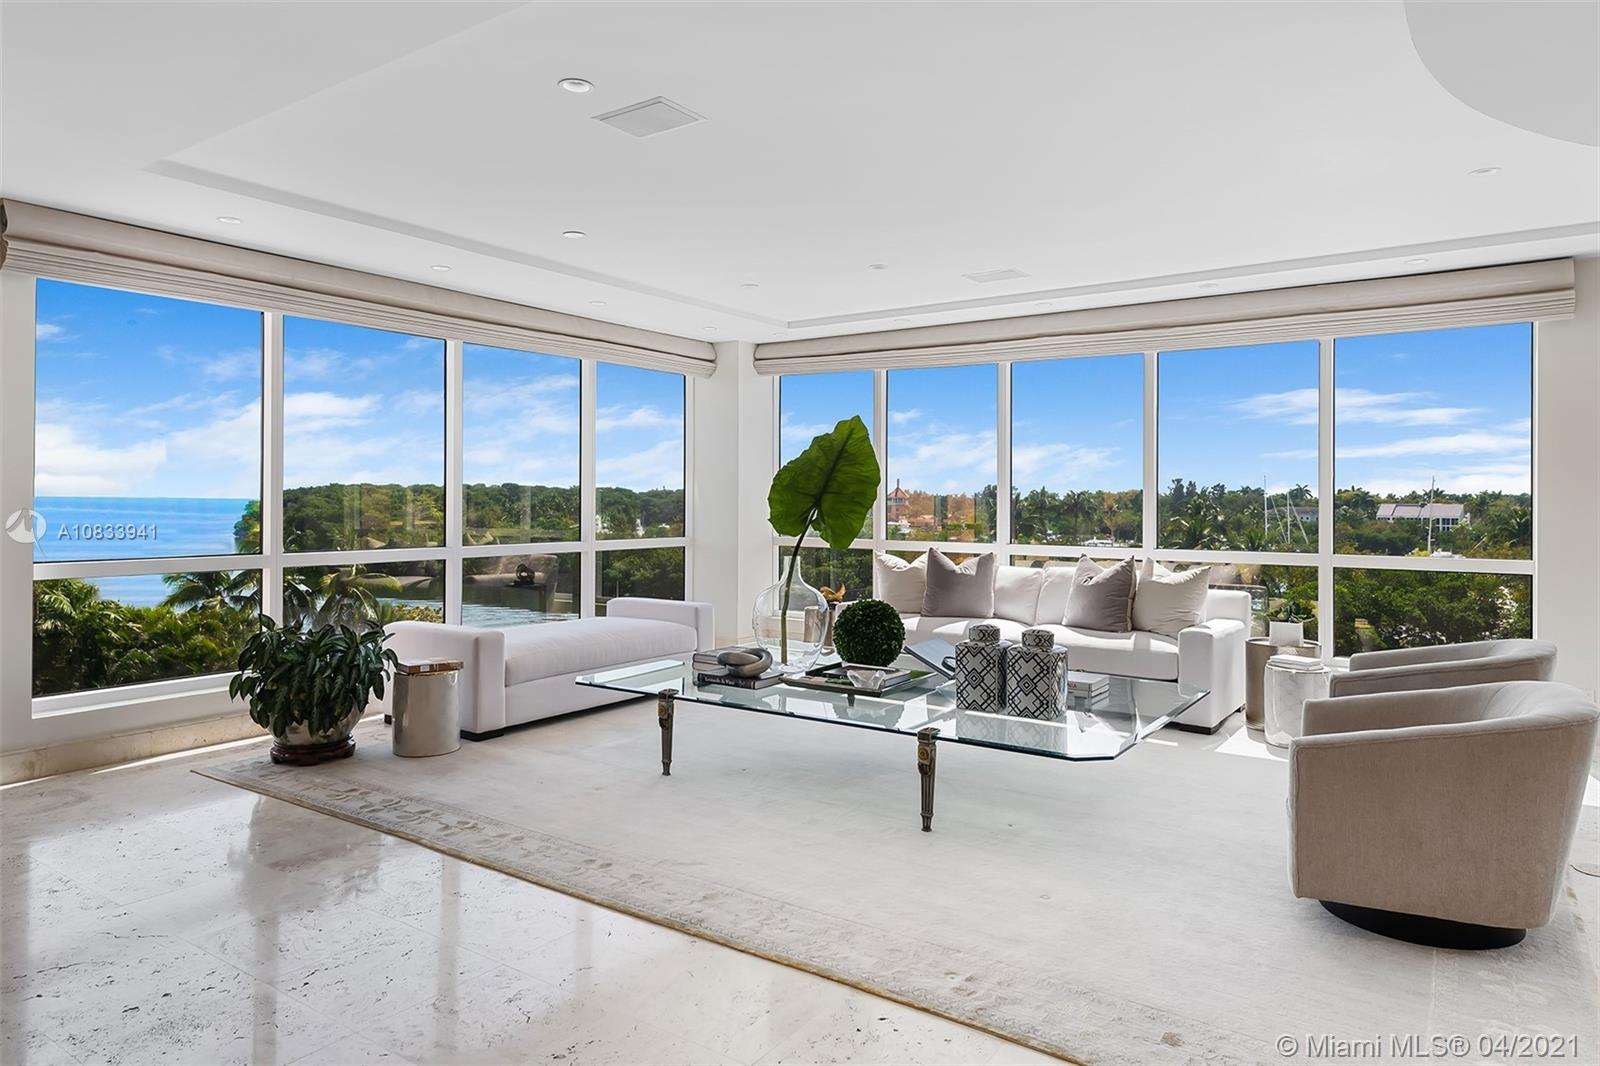 """Rare opportunity to acquire two combined """"A"""" line units with over 7,000+ s.f. of living space in the prestigious Gables Club complex. With direct bay and city views, this spectacular fully updated unit, offers the opportunity for one to """"have it all""""; on-site restaurant, gym/spa, lavish entertainment spaces, heated pool, docks and 24 hrs security with valet parking and doorman. Spread over two floors with an elevator and a gracious interior connecting staircase, this luxury home in the sky includes everything one needs for luxurious worry free living. Currently this stunning unit is being used as a 4 bedroom apartment, but is was configured to be 6 bedrooms; one of the bedrooms is being used as a gym/playroom/children's room and the other a beautifully built out library/office."""